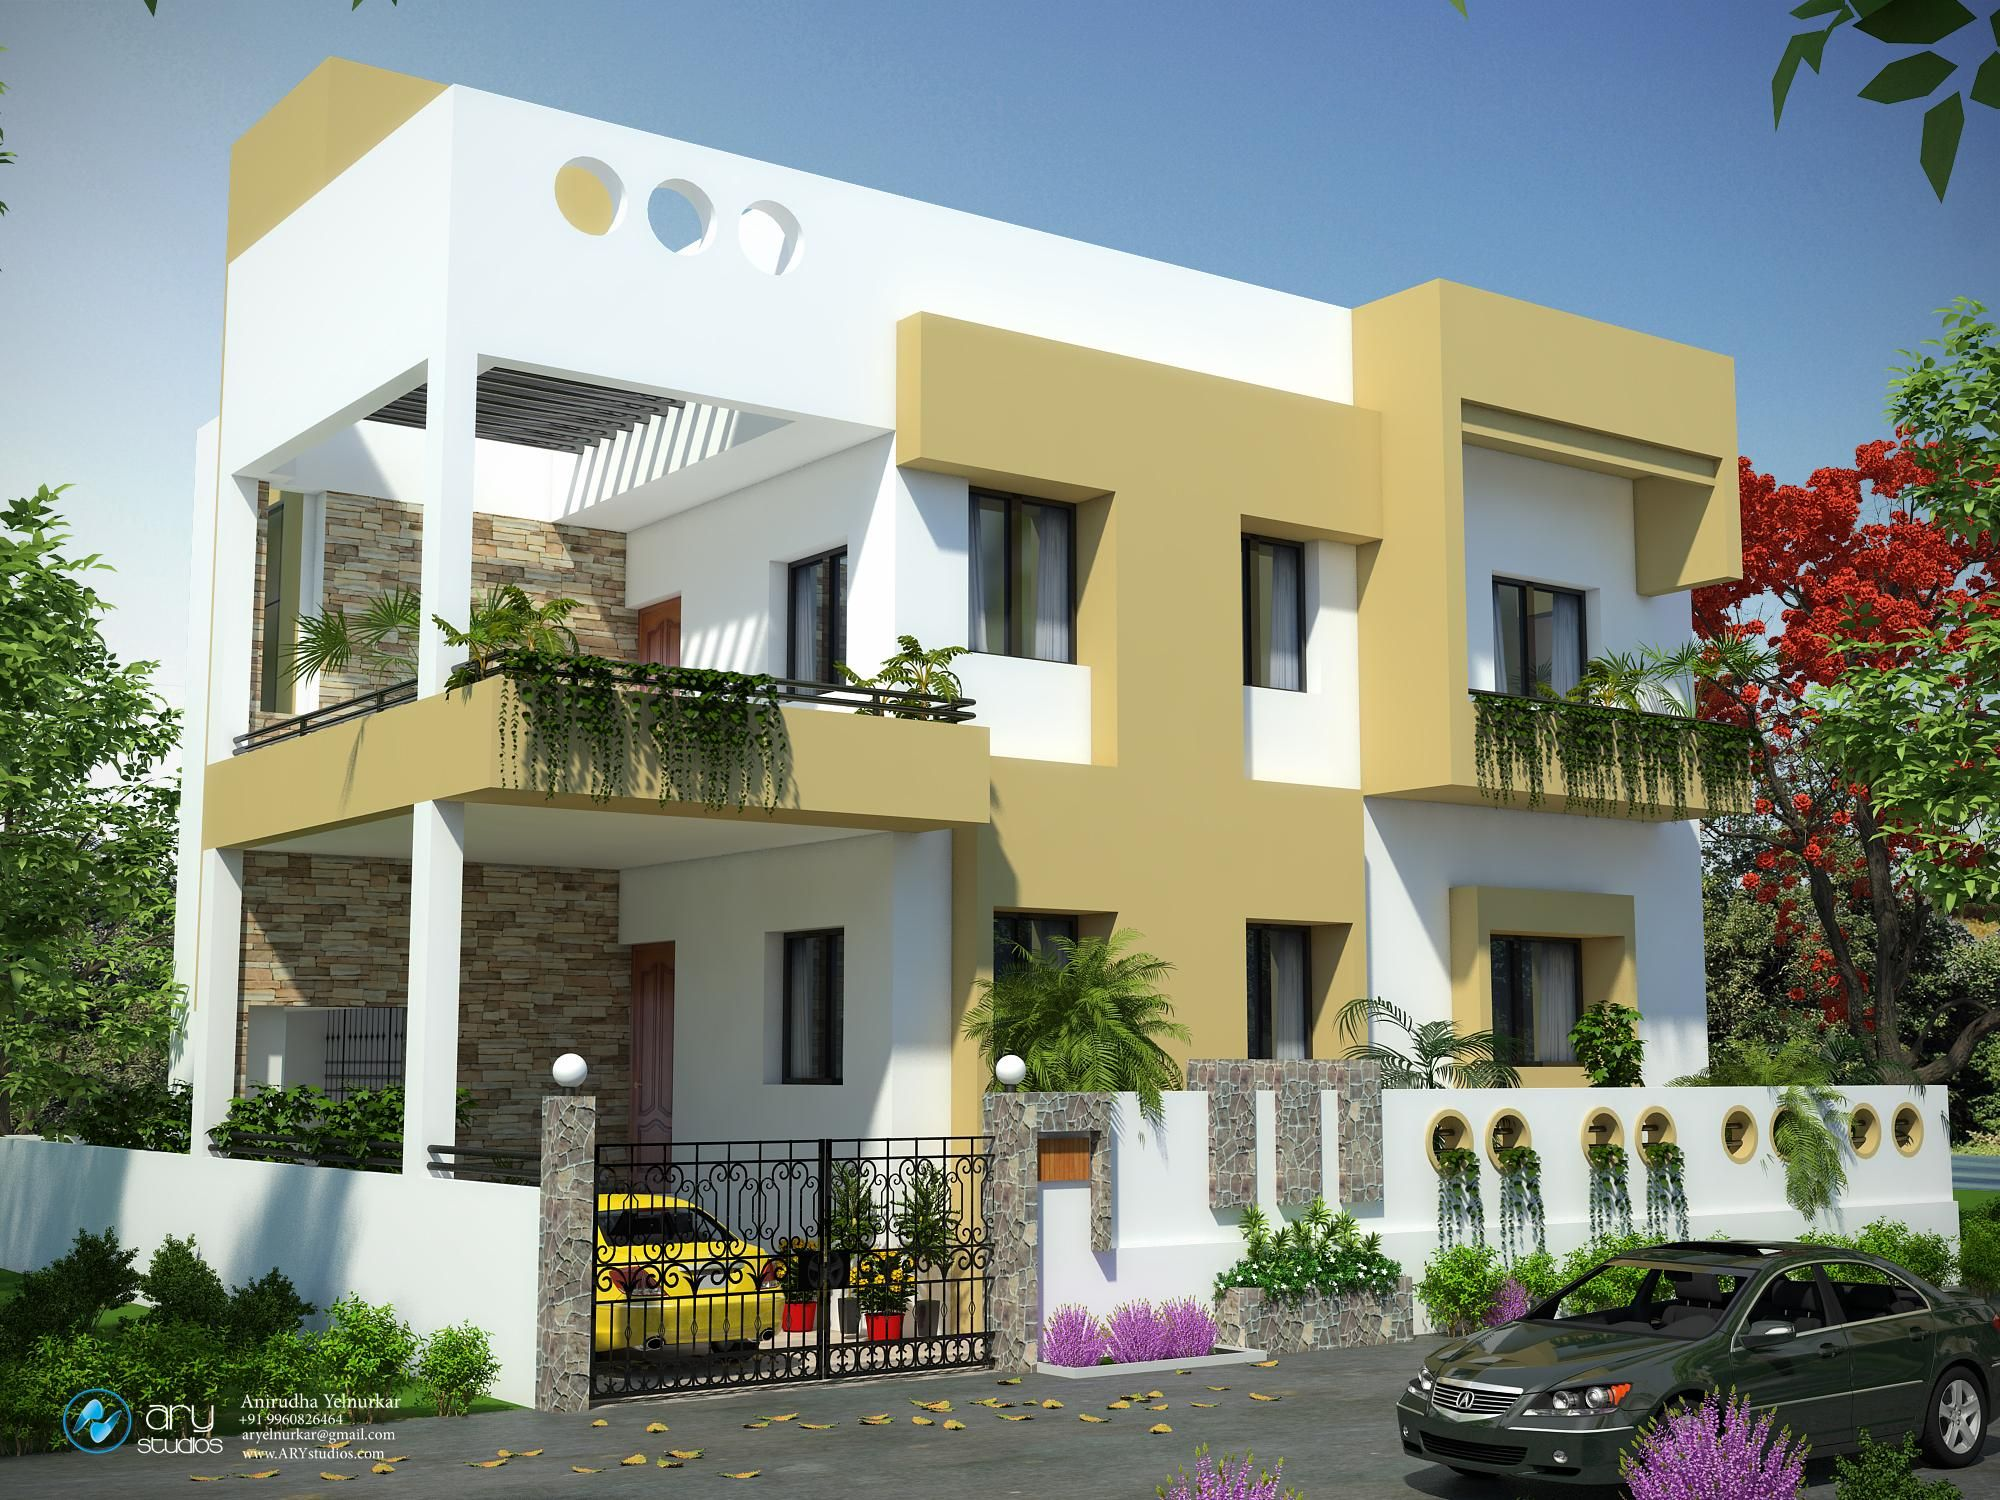 Apartment Building Elevation Designs indian residential building designs apartment elev | interior